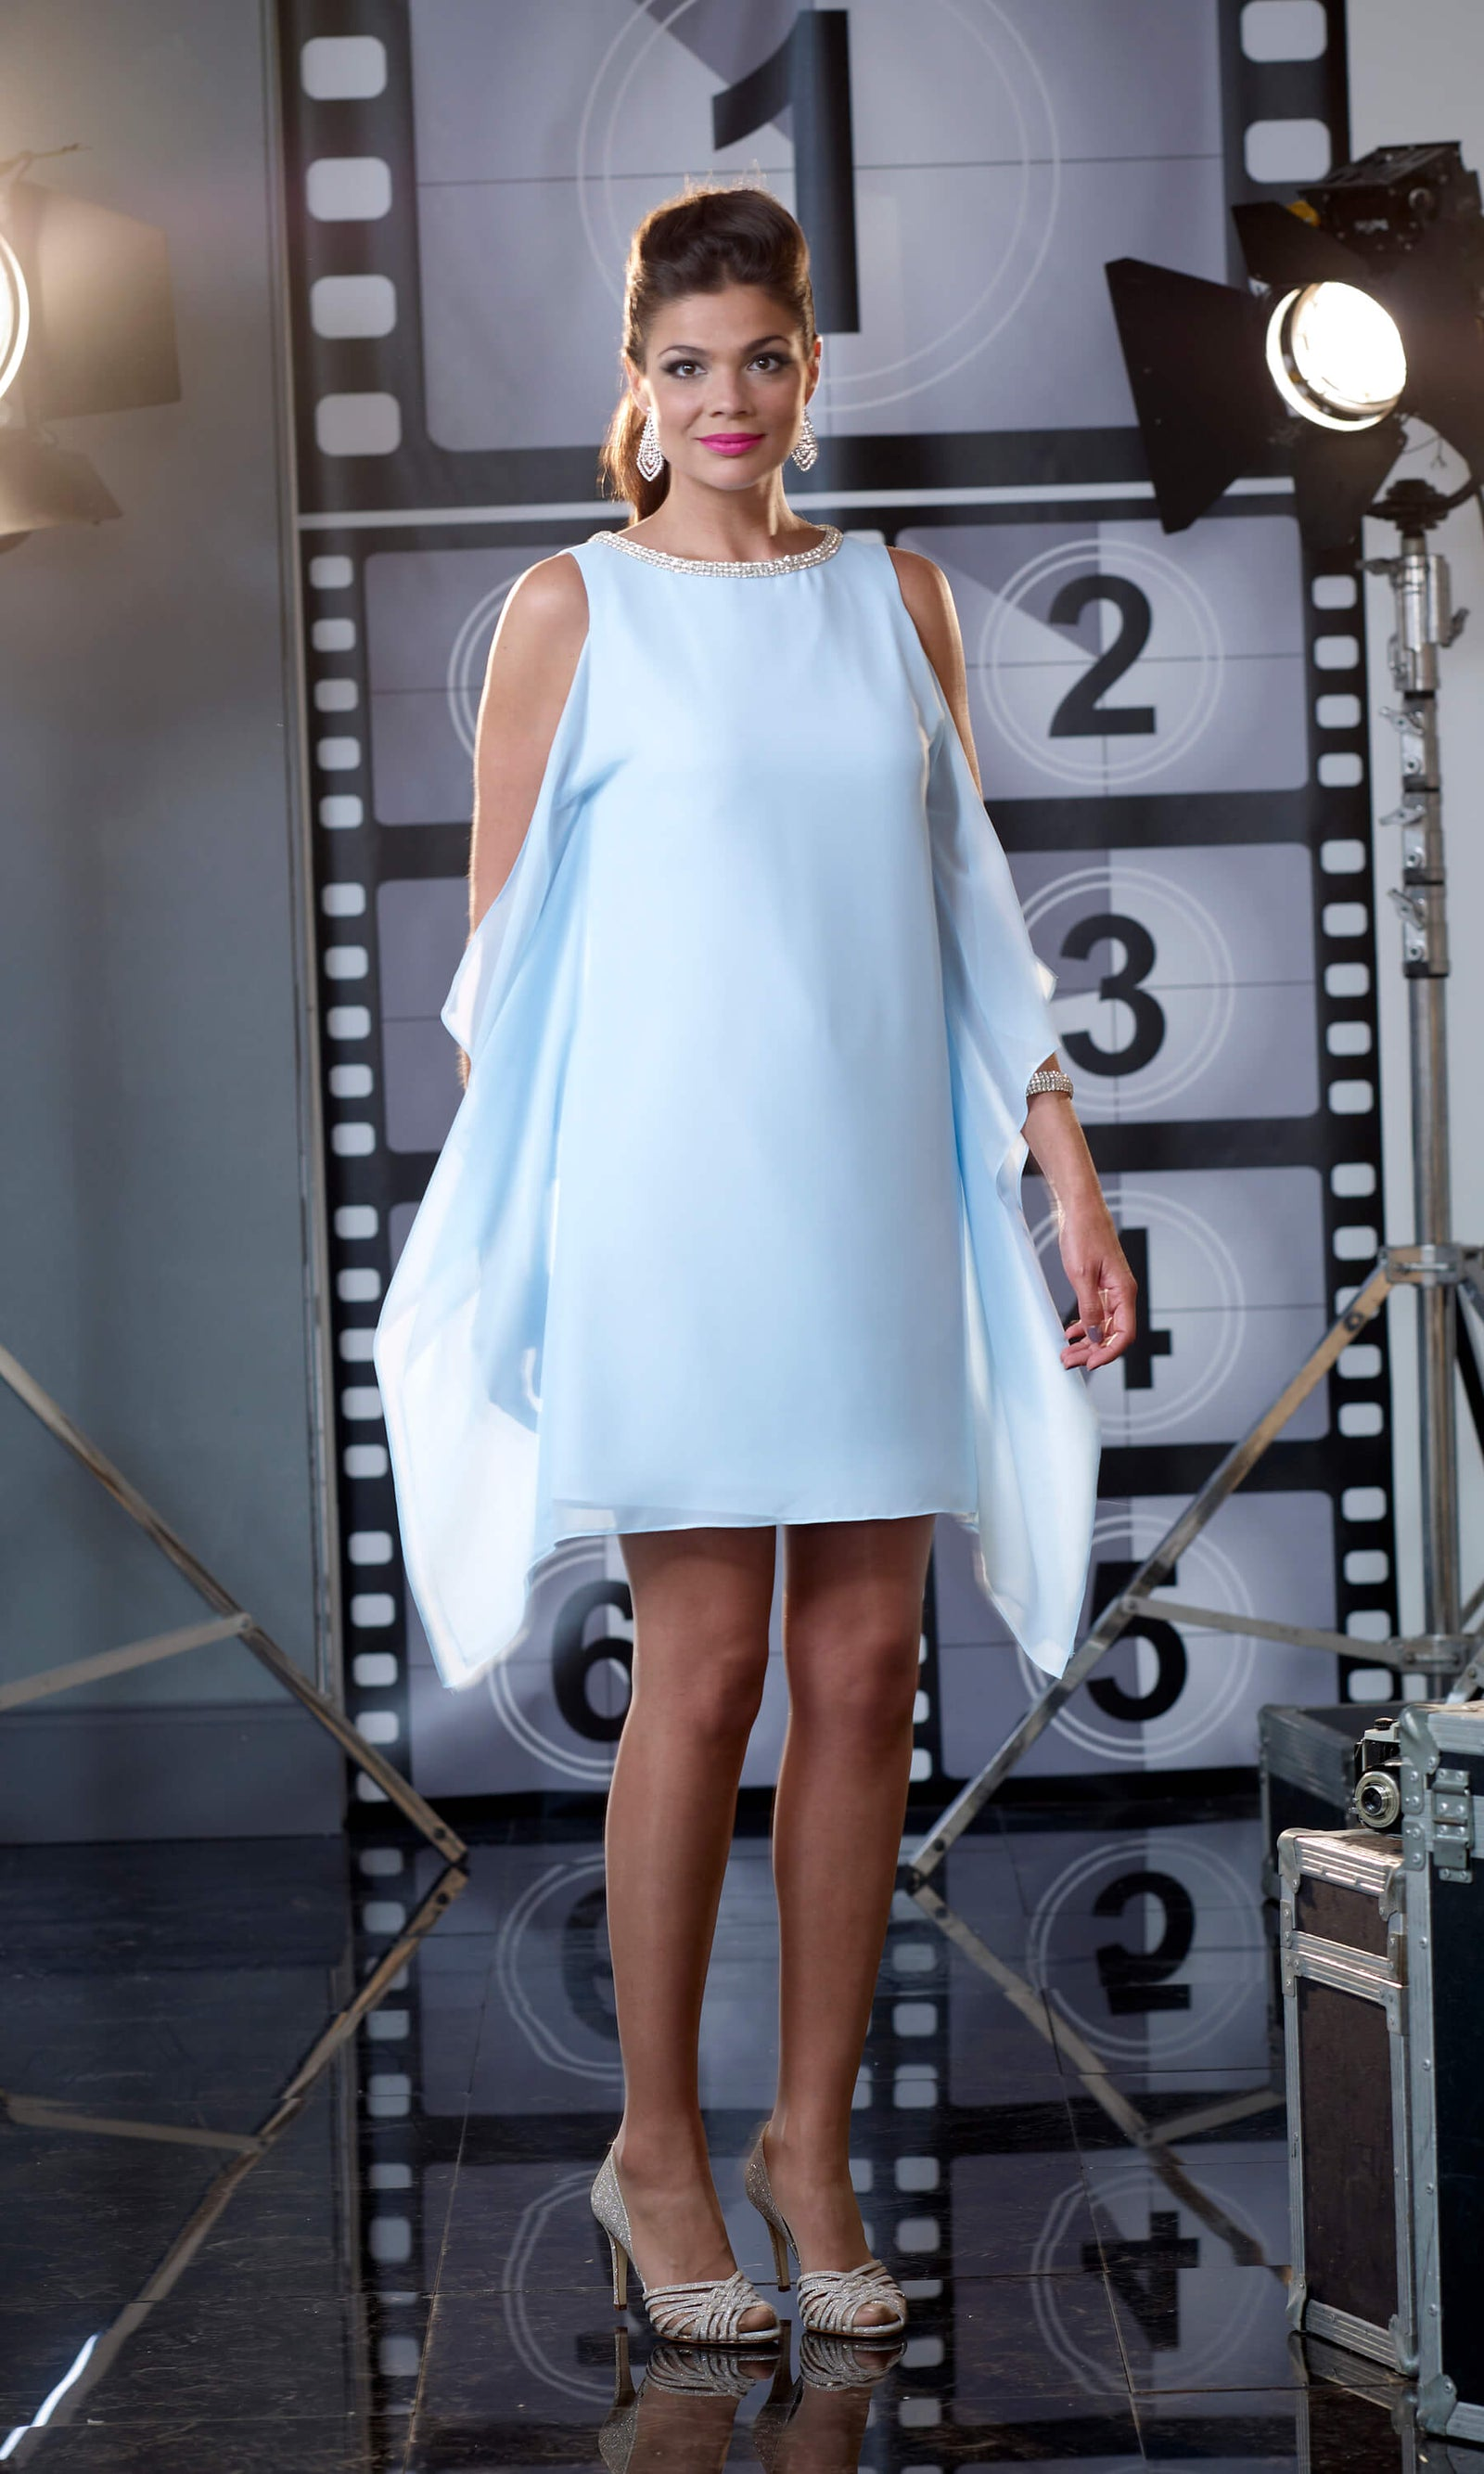 VO1423S8 Capri Blue Veromia Occasions Chiffon Dress - Fab Frocks